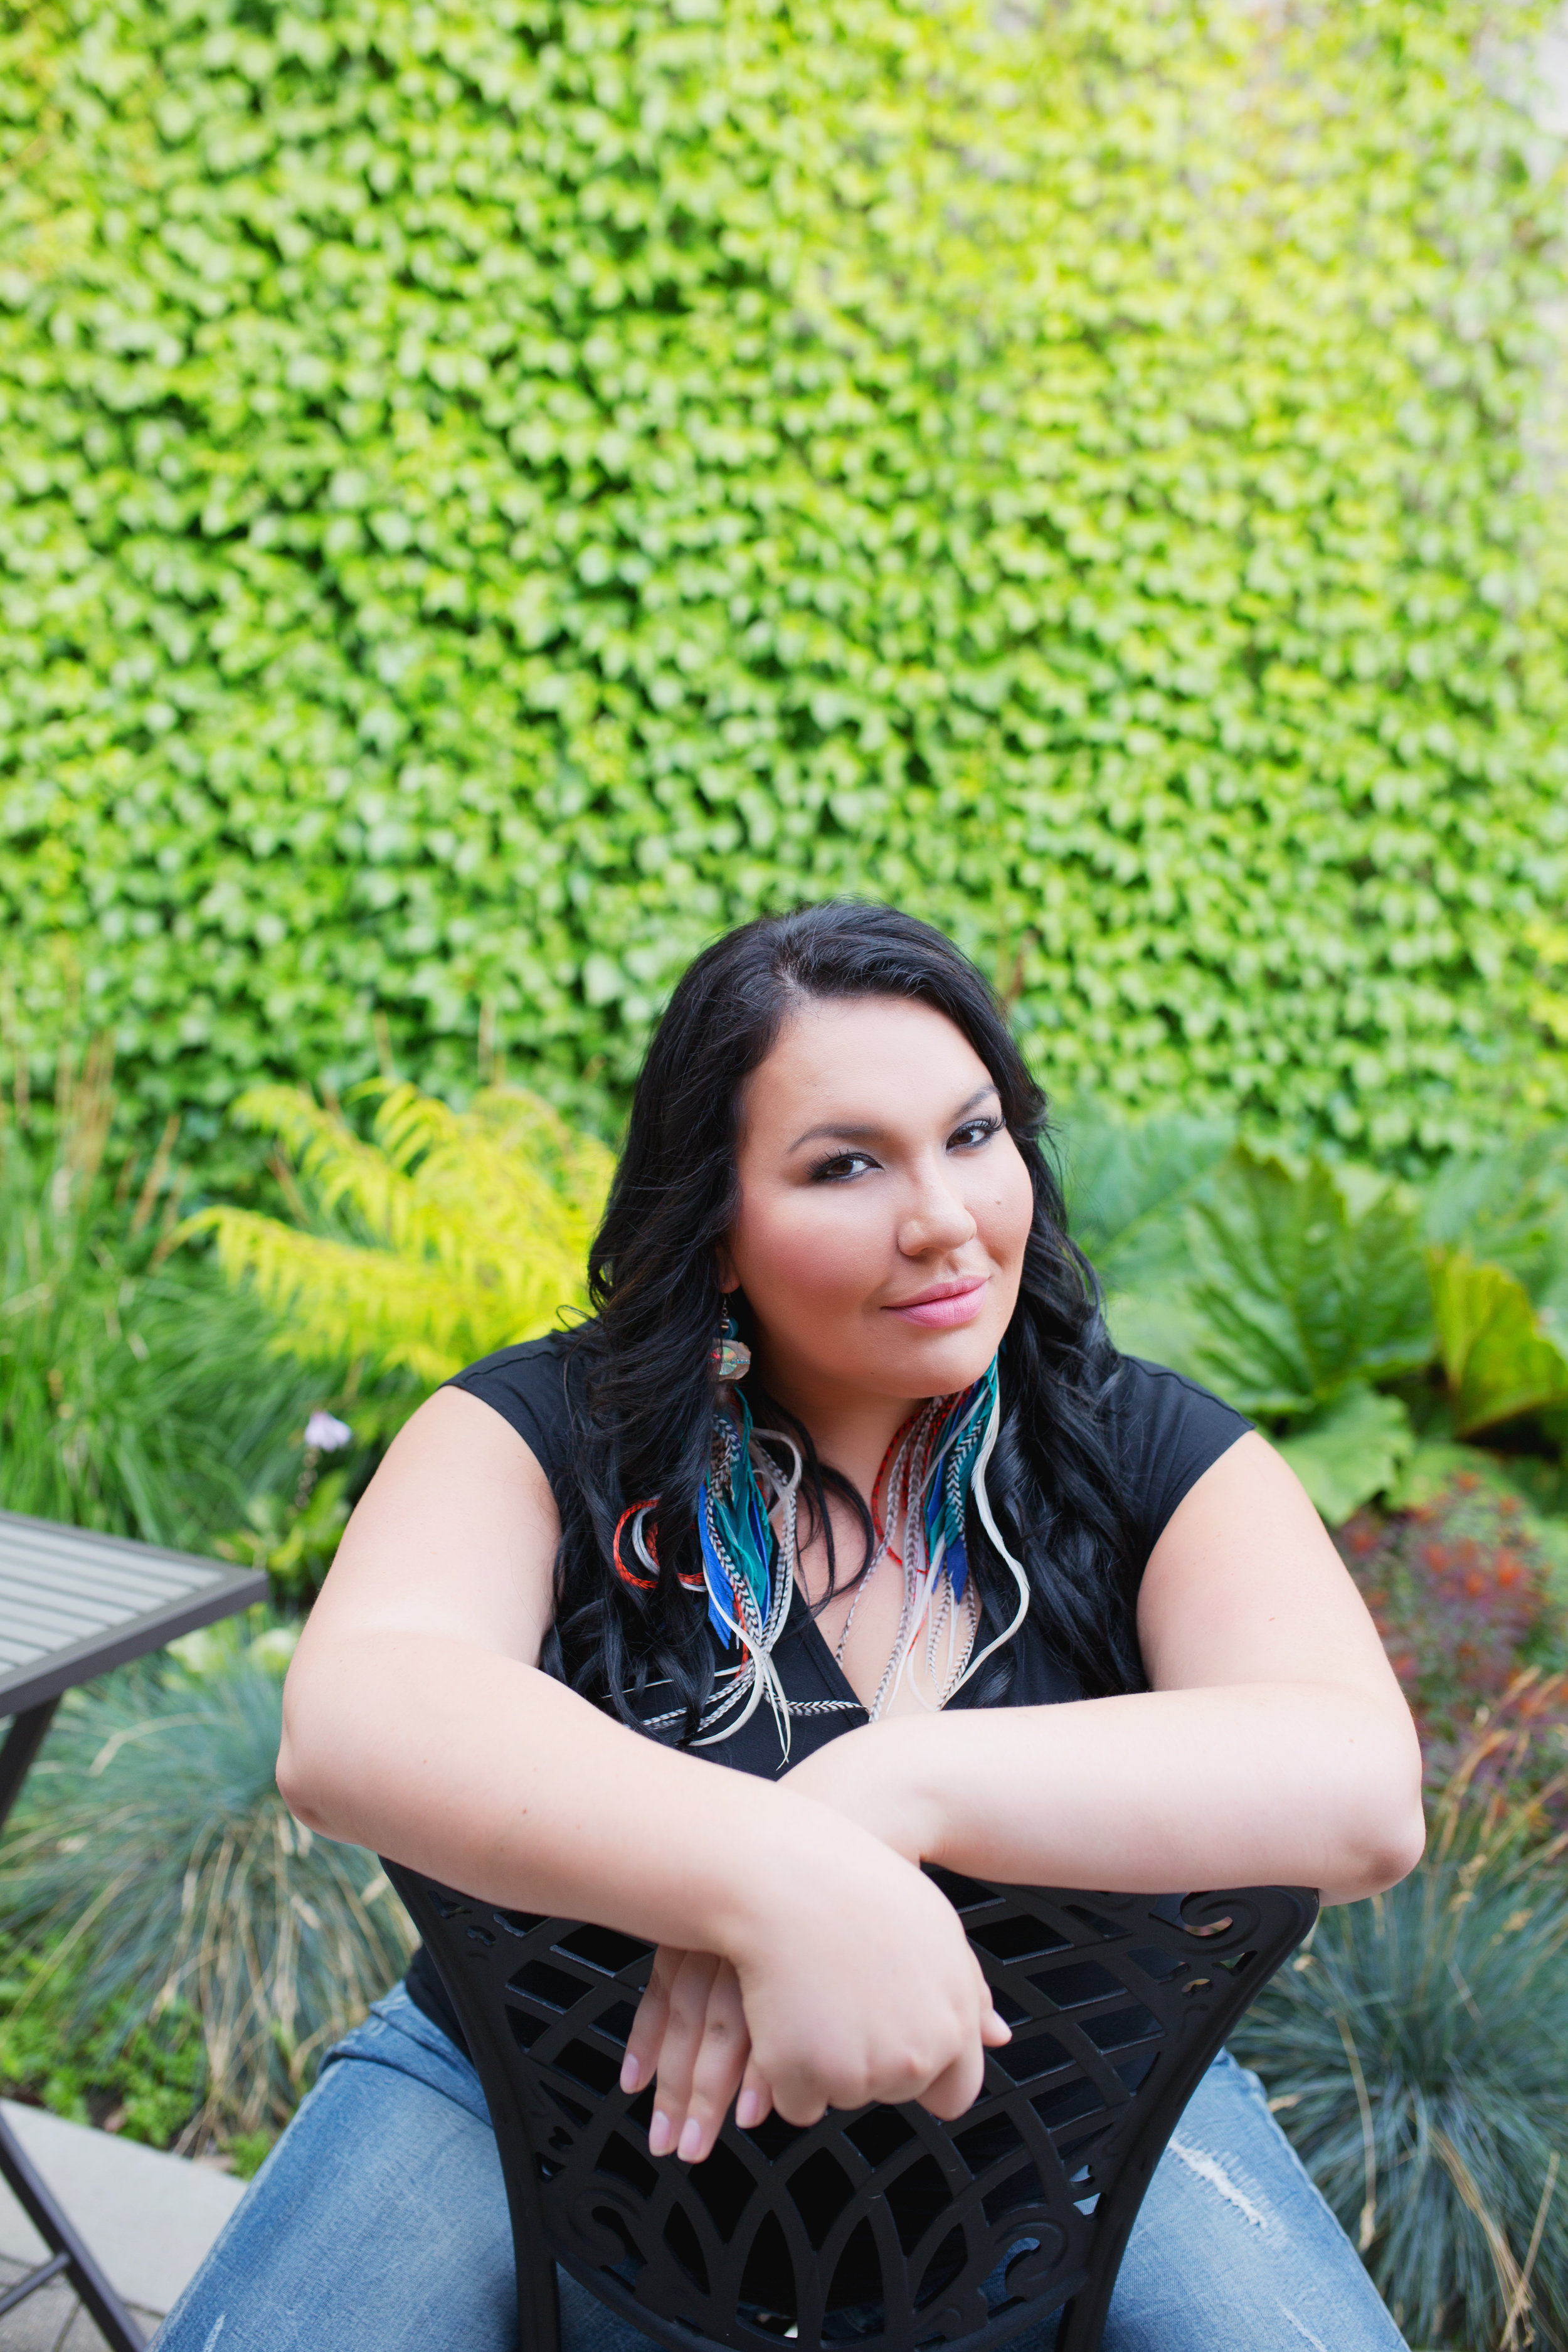 Tenille K Campbell, Poetry - Tenille K Campbell is a Dene/Métis author and photographer from English River First Nation in Northern Saskatchewan. She completed her MFA in Creative Writing from UBC and is enrolled in her PhD at University of Saskatchewan, focusing on Indigenous Literature. Her inaugural poetry book, #IndianLovePoems (Signature Editions 2017) is an award-winning collection of poetry that focuses on Indigenous Erotica—using humour, storytelling and sensuality to reclaim and explore ideas of Indigenous sexuality. #IndianLovePoems has placed in the poetry category in the WILLA Literary Awards (USA), as well as the first Indigenous Voices Awards (Canada), and has won two Saskatchewan Book Awards.image: Maki Fotos